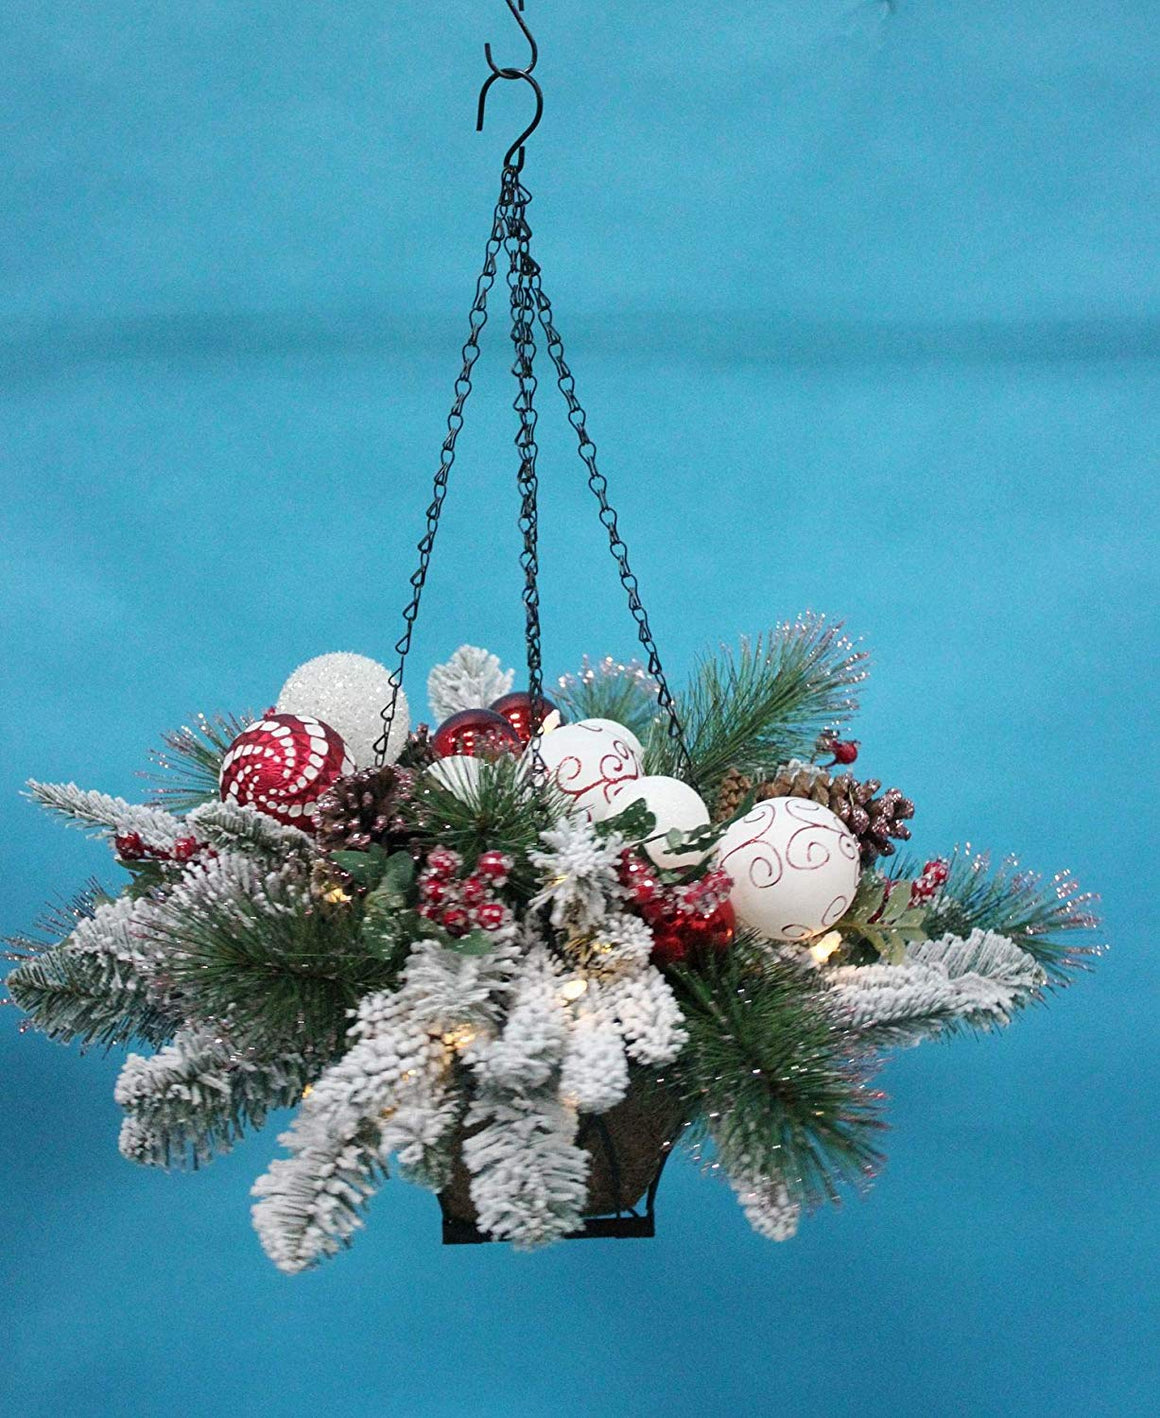 TenWaterloo Christmas Wonderful Winter Collection Snow Flocked Lighted Hanging Basket, 25 Inches x 12 Inches, with Ornaments and Battery Operated Timer, Metal Basket